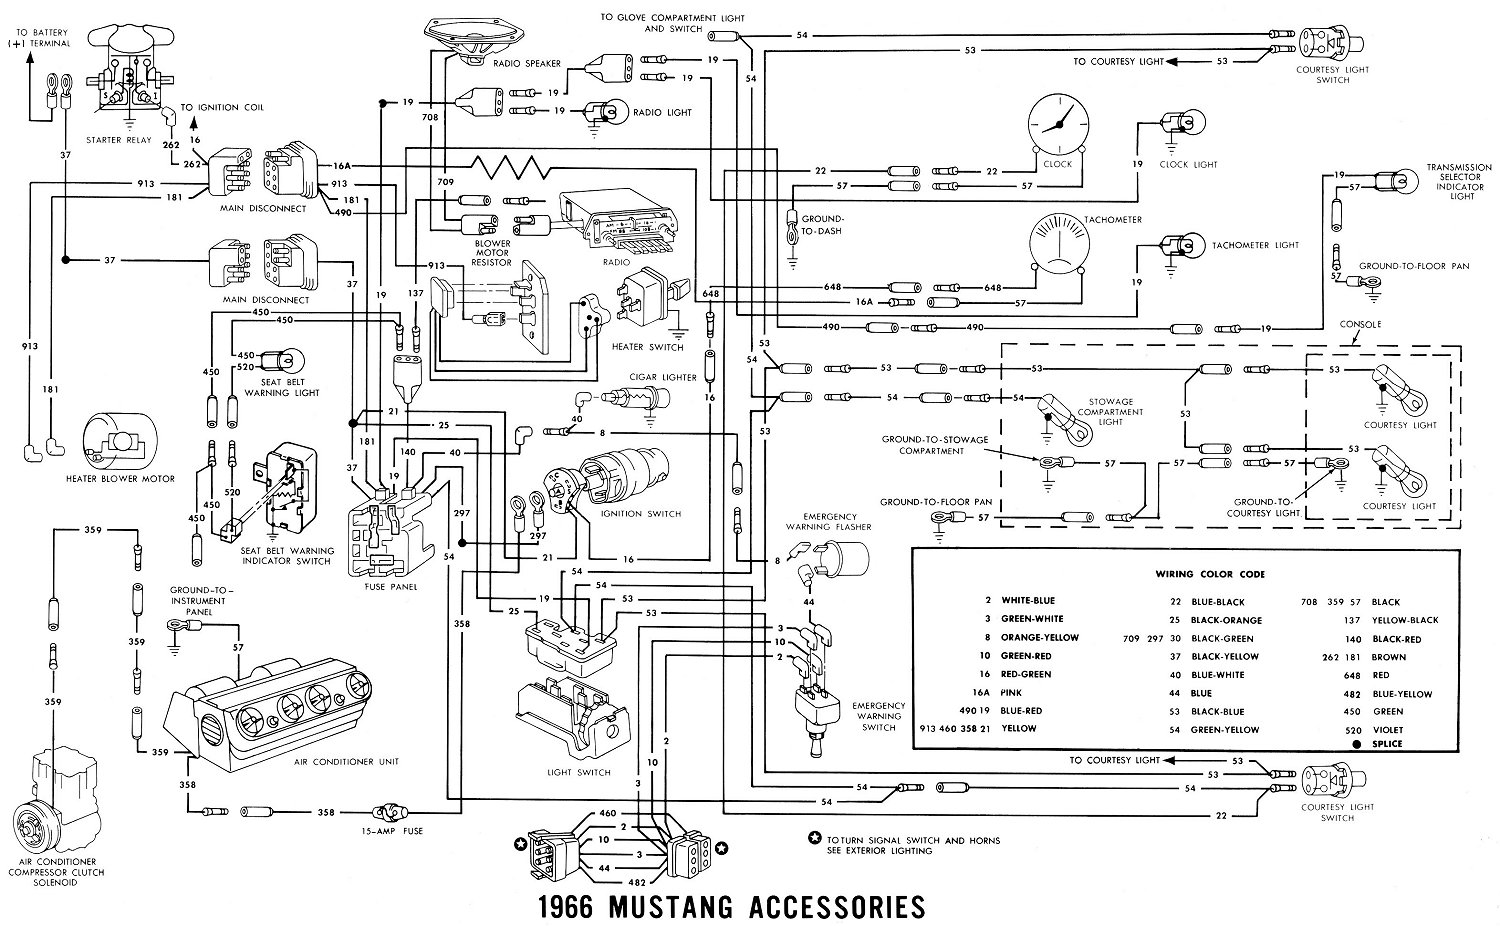 66acces1 1966 mustang wiring diagrams average joe restoration 1966 ford mustang wiring diagram at crackthecode.co